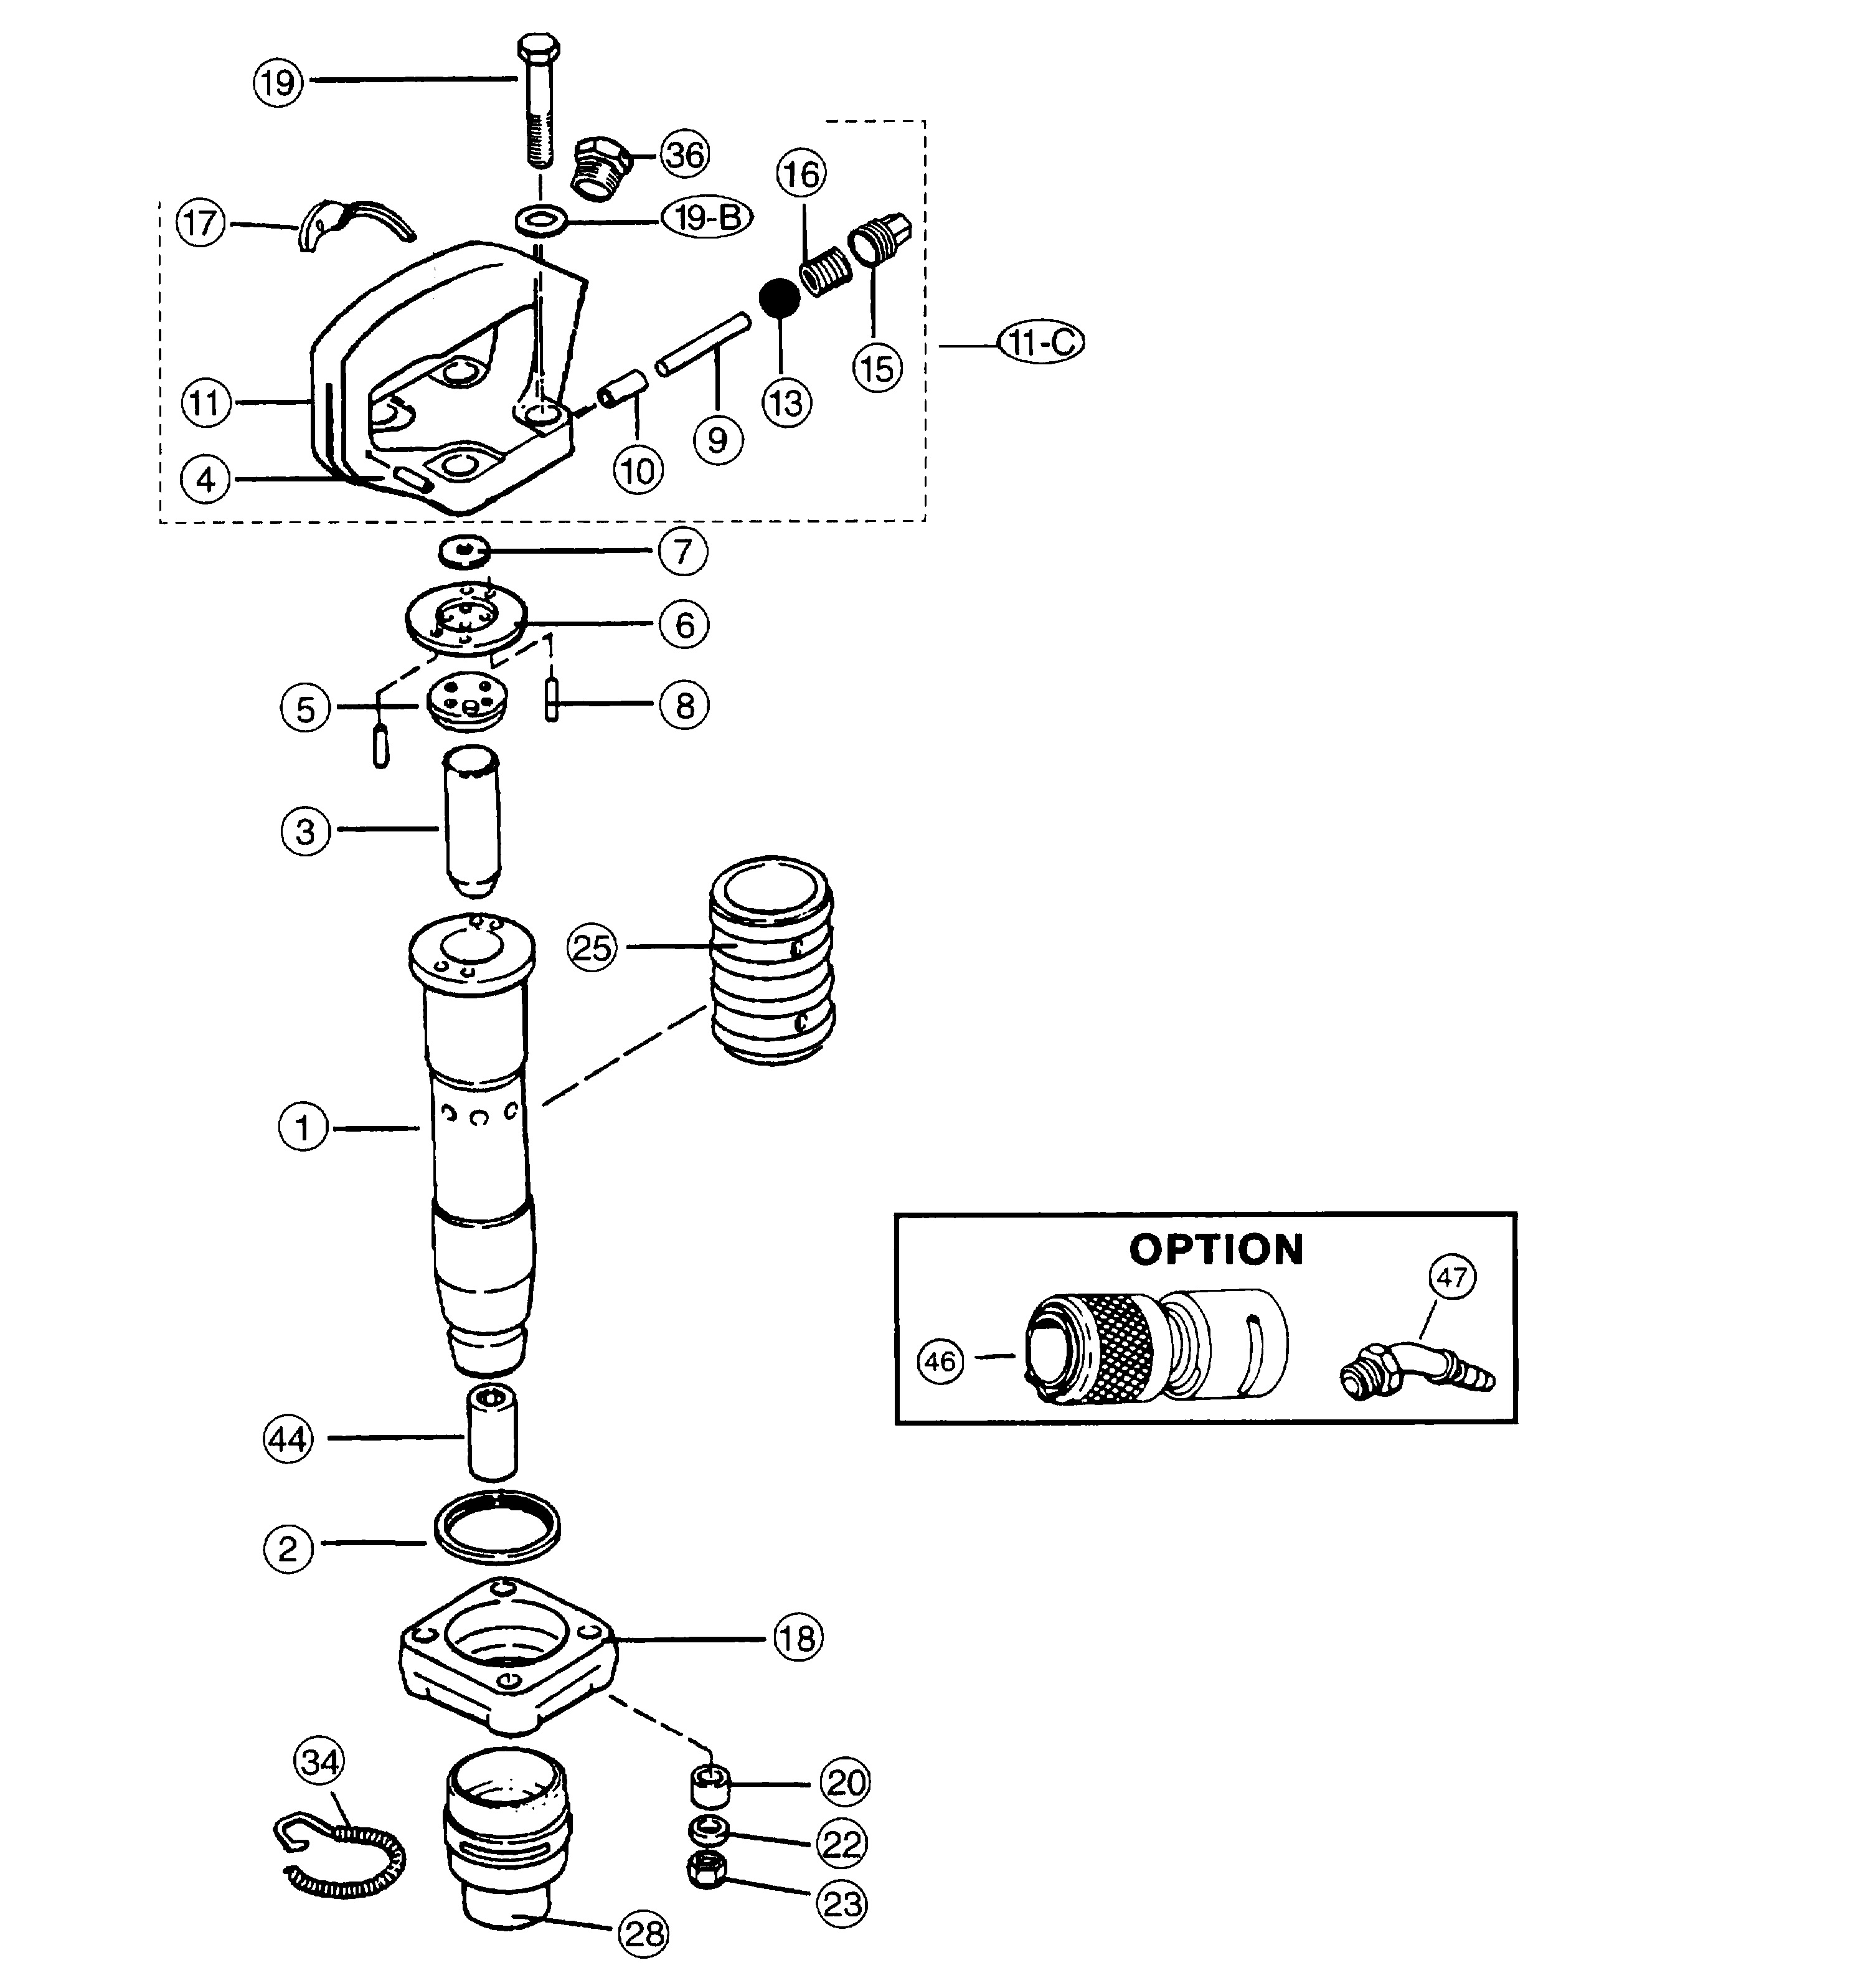 Atlas Copco Throttle Spring Diagram Electrical Wiring Diagrams Tex 319 Chipping Hammer Page 1 Of